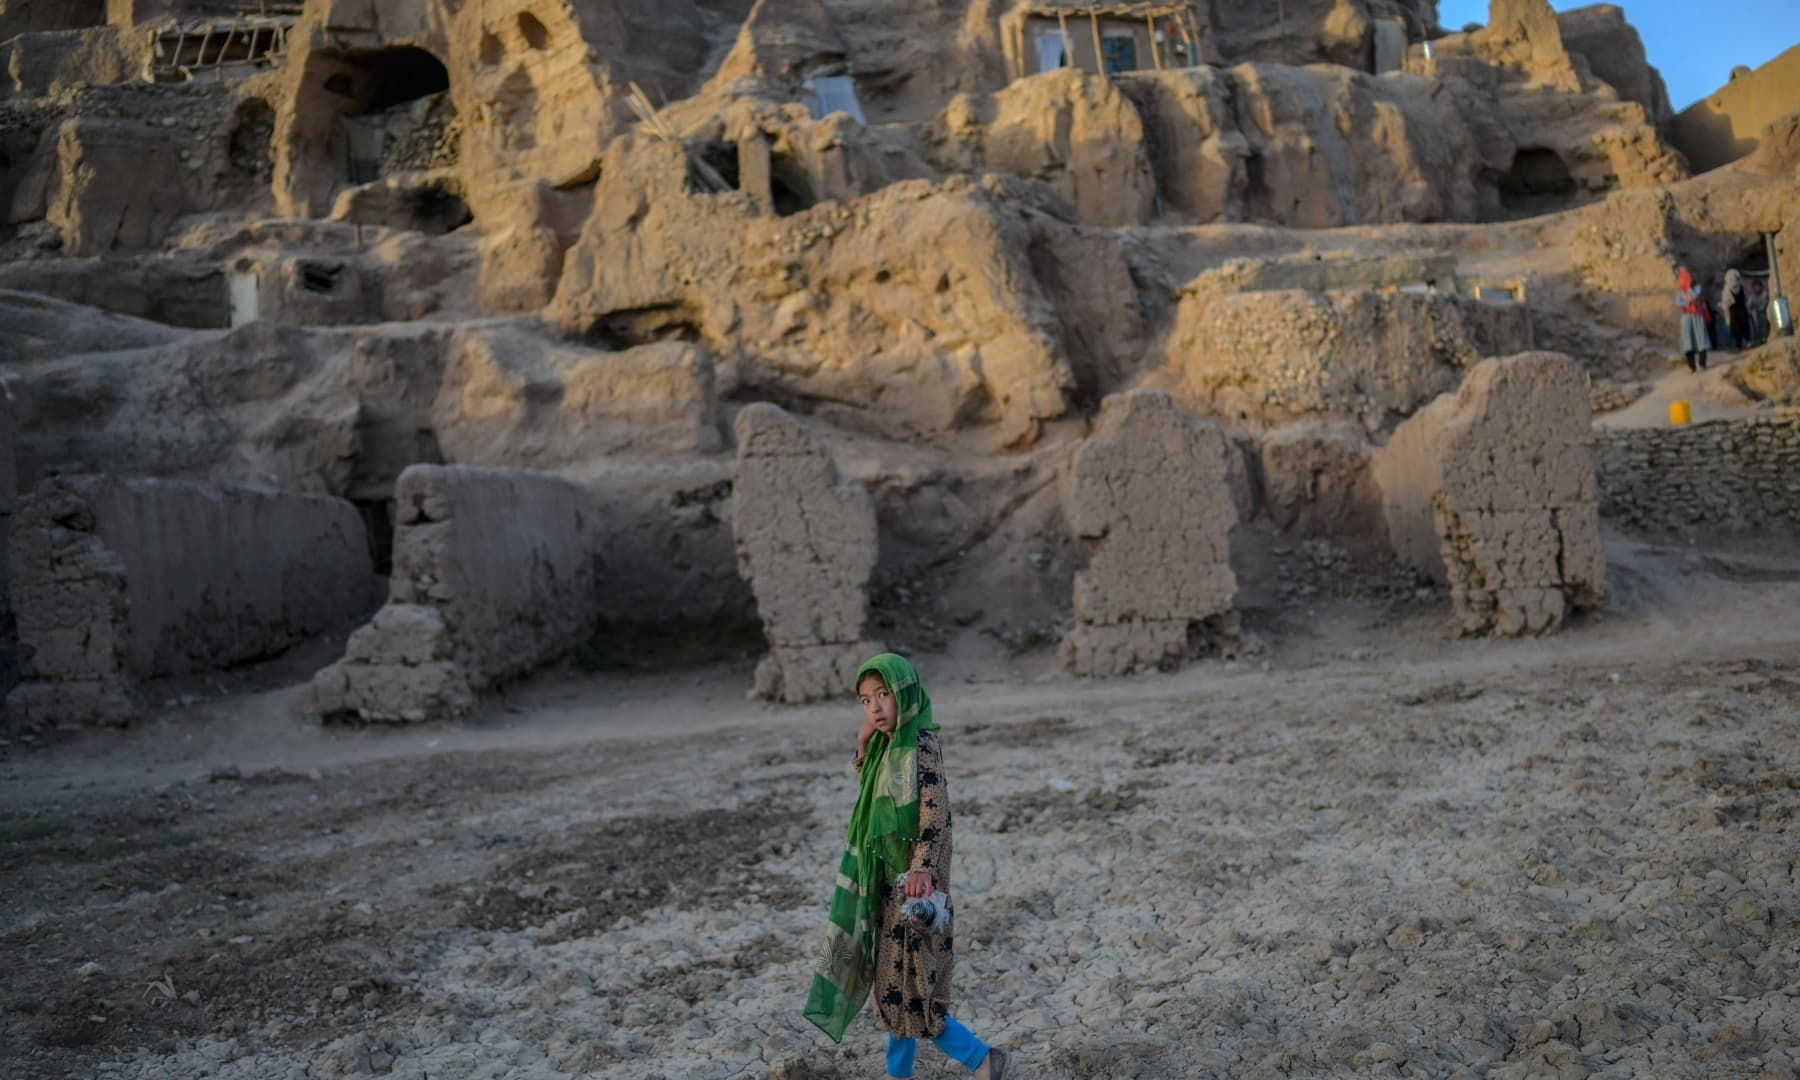 A Hazara ethnic girl walks past the cliffs pockmarked by caves where people still live as they did centuries ago in Bamiyan, Afghanistan on October 3, 2021. — AFP